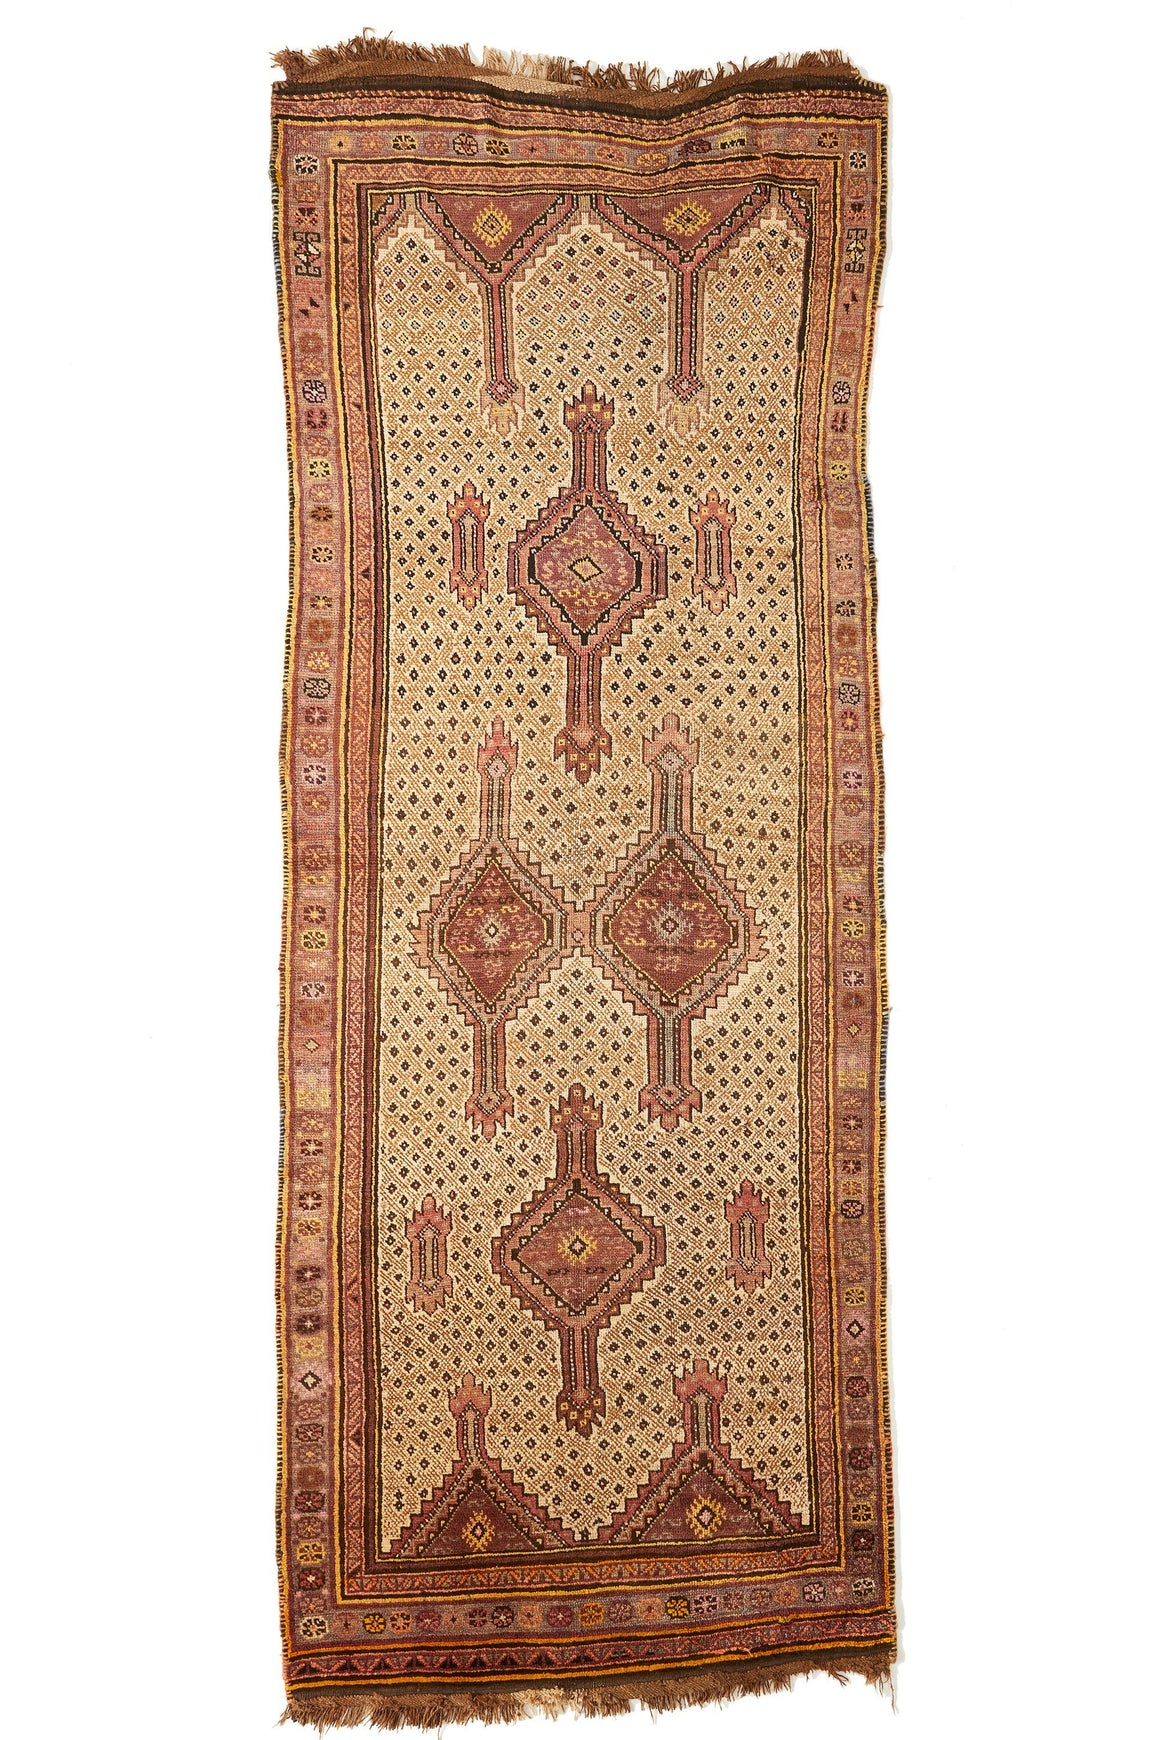 "'Sonora' Turkish Area Rug - 4'8'' x 12'10"" - Canary Lane - Curated Textiles"